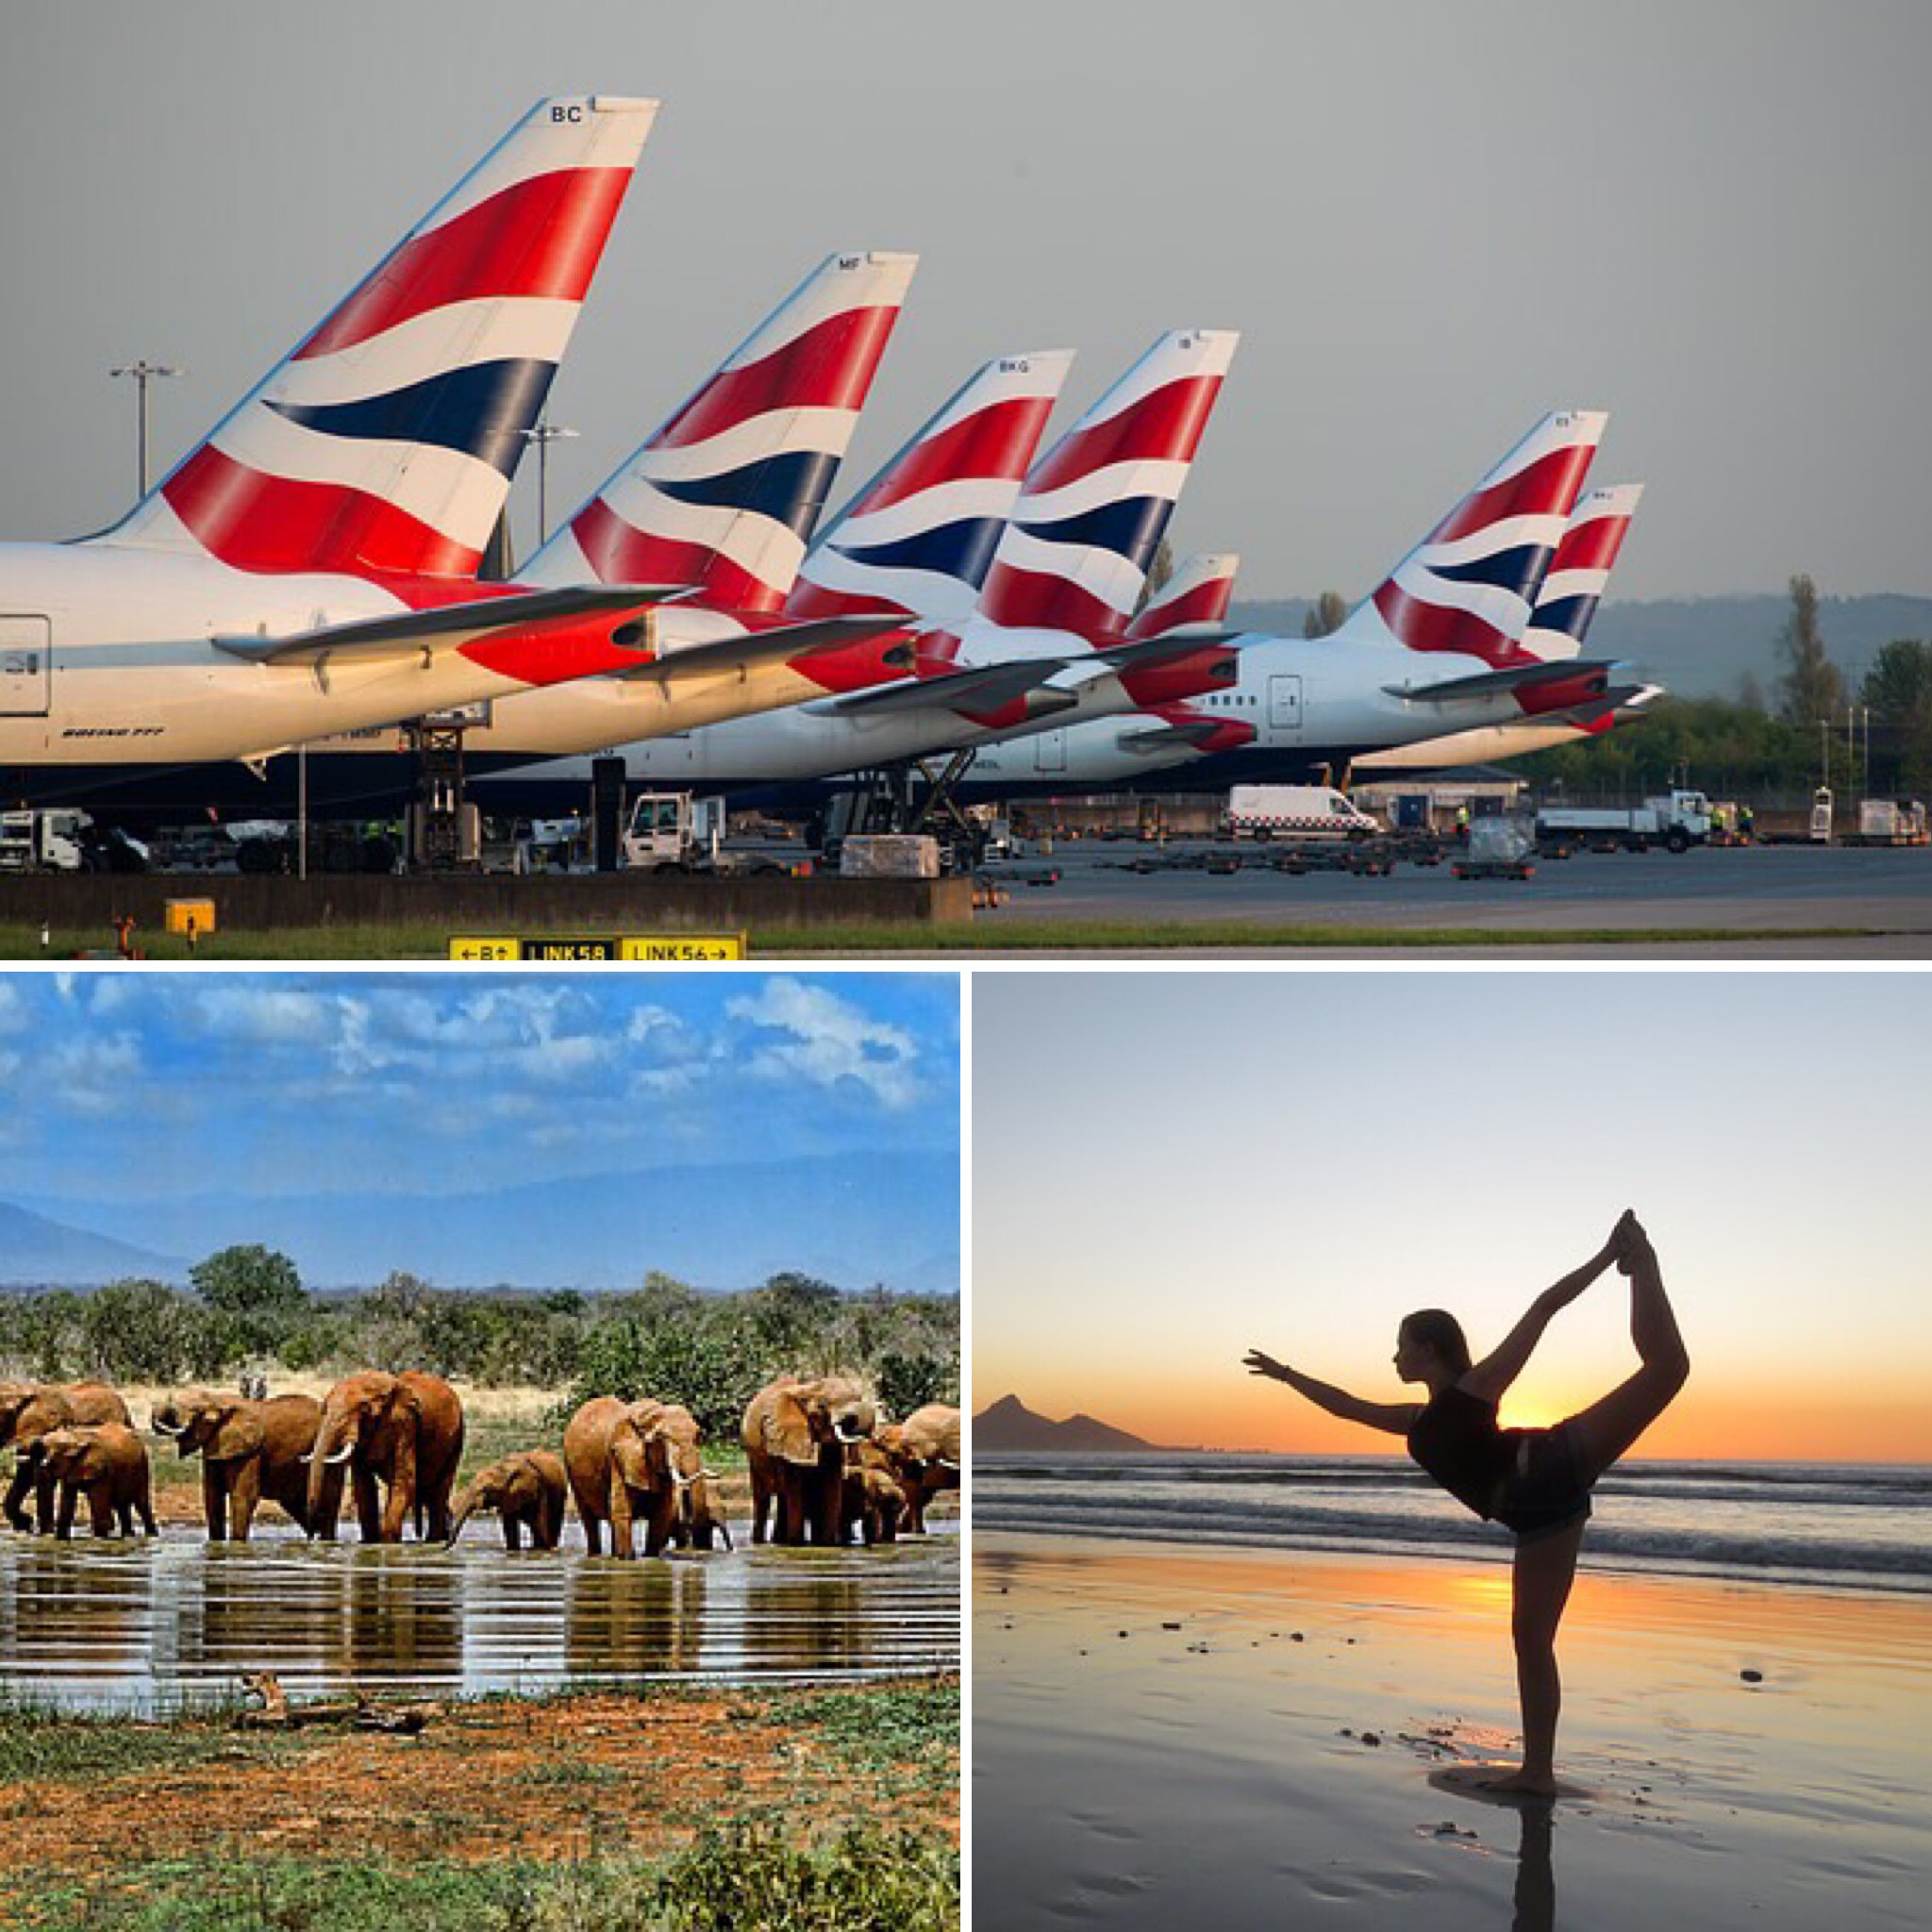 BA club world deal to south africa for £1150